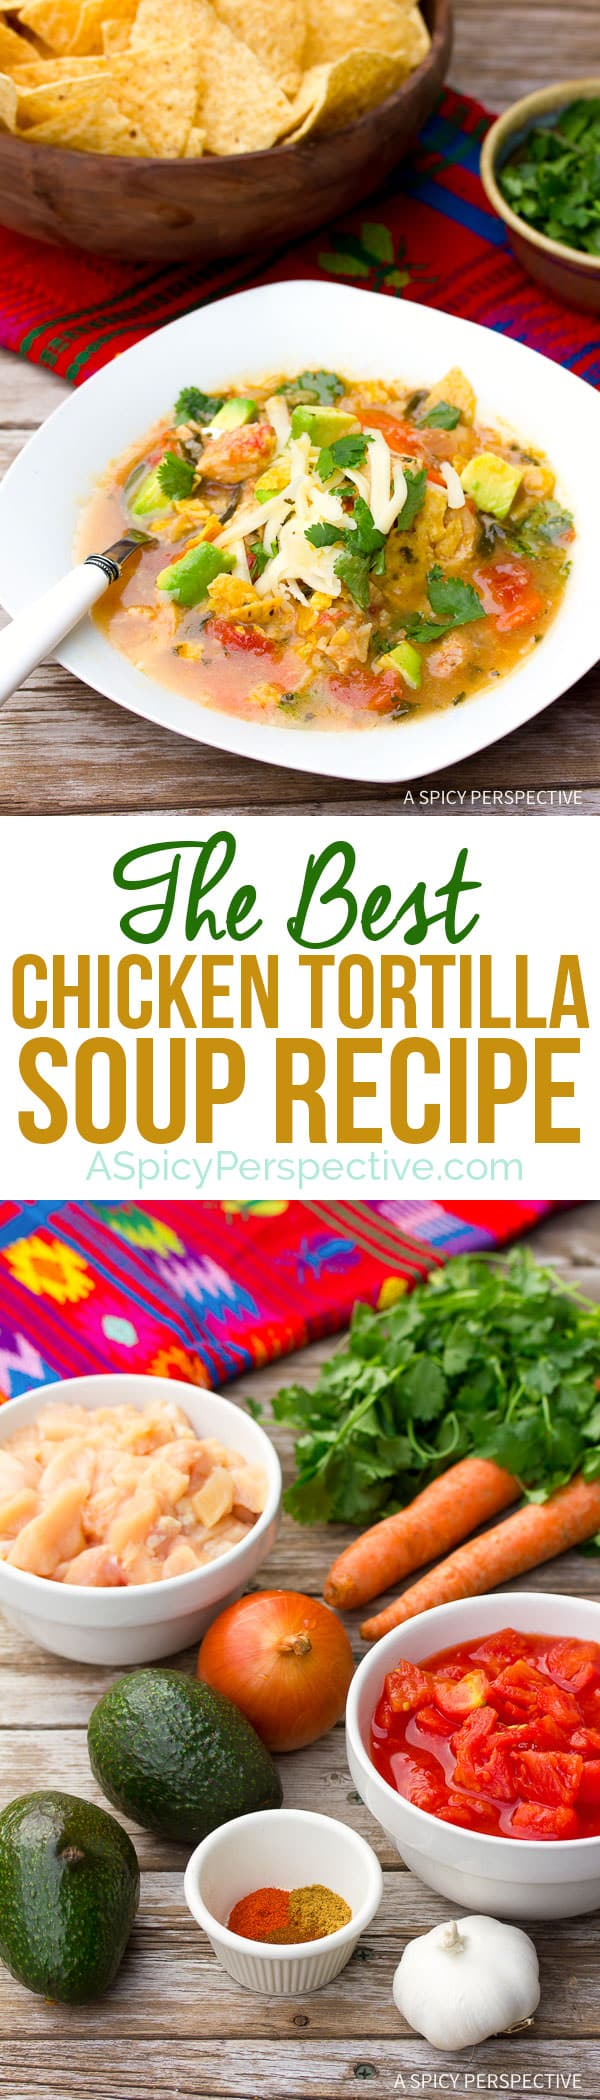 The Best Ever Chicken Tortilla Soup Recipe on ASpicyPerspective.com